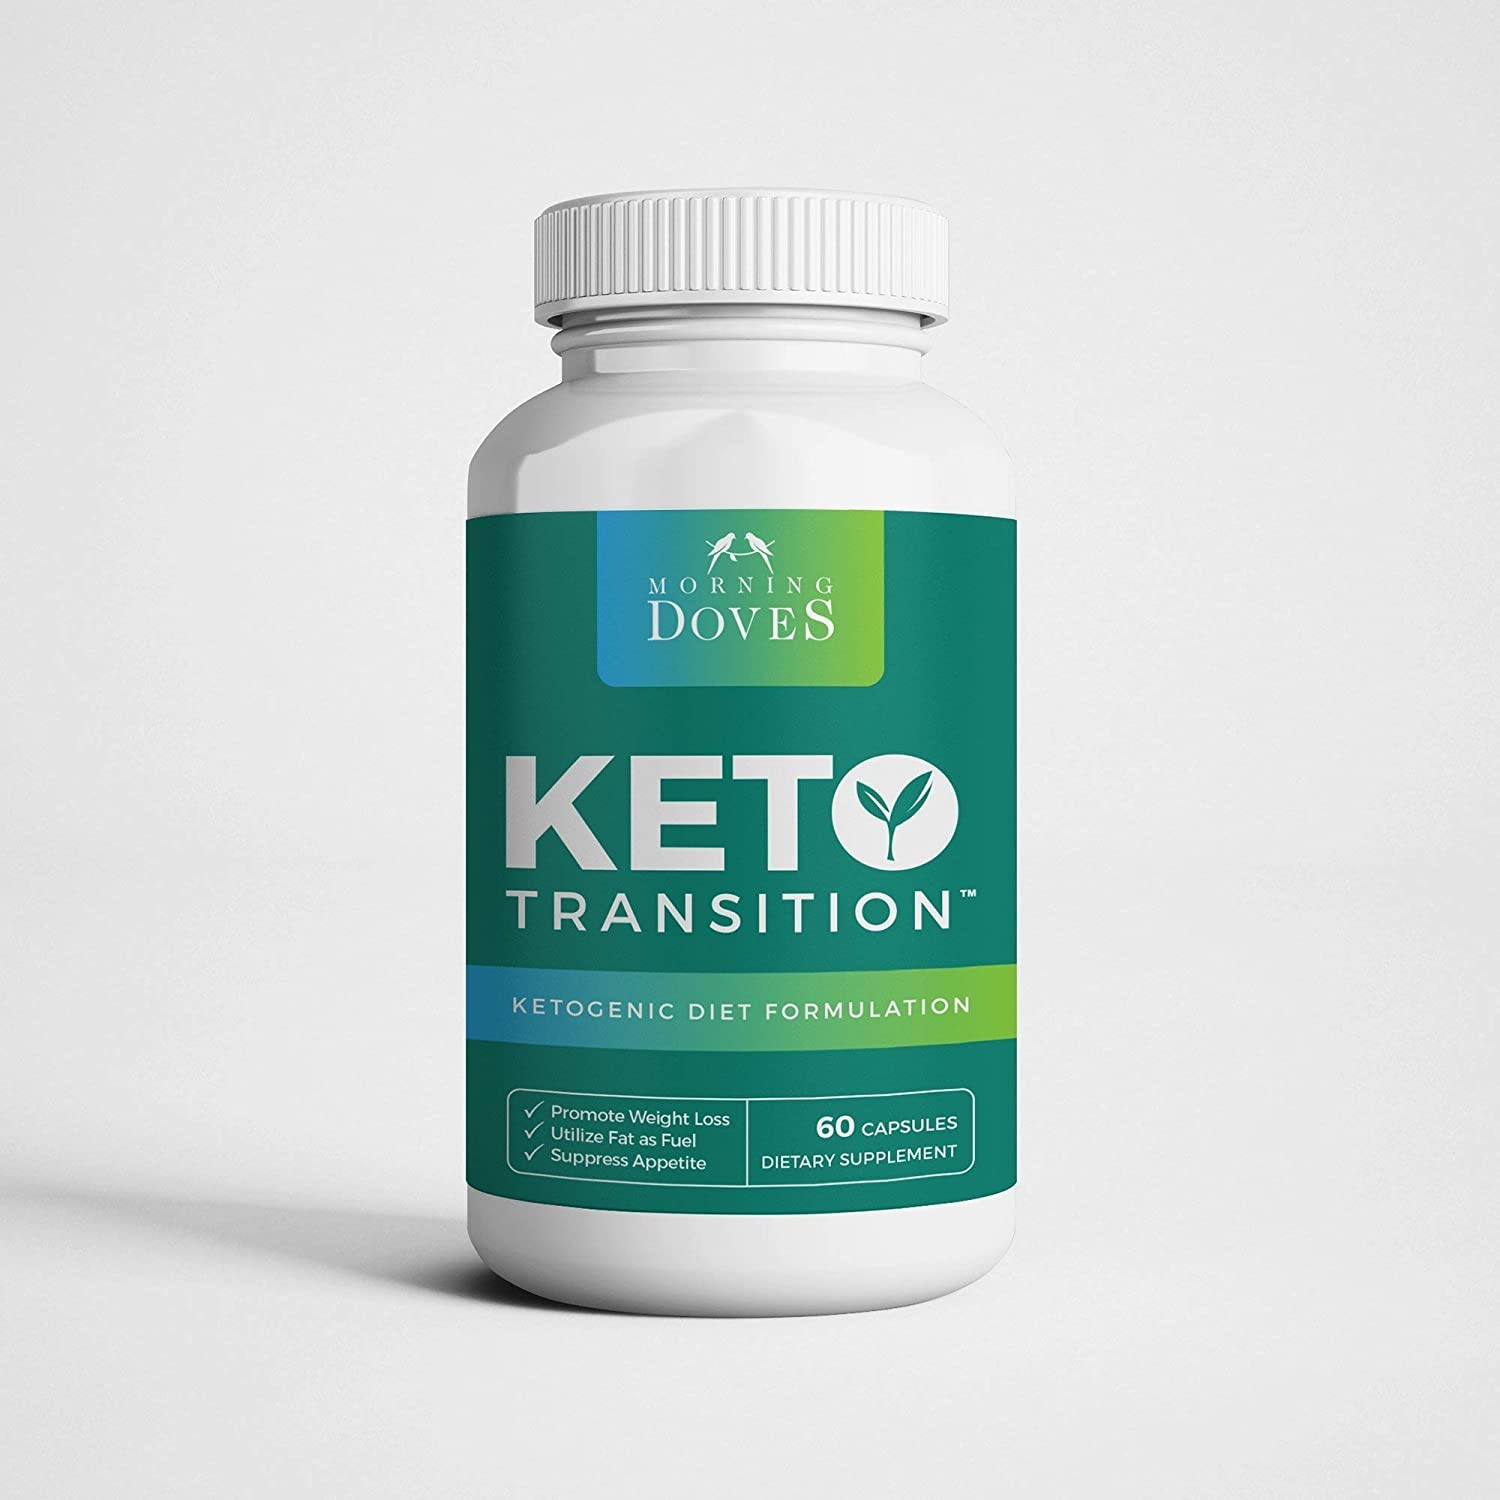 miracle pill keto diet